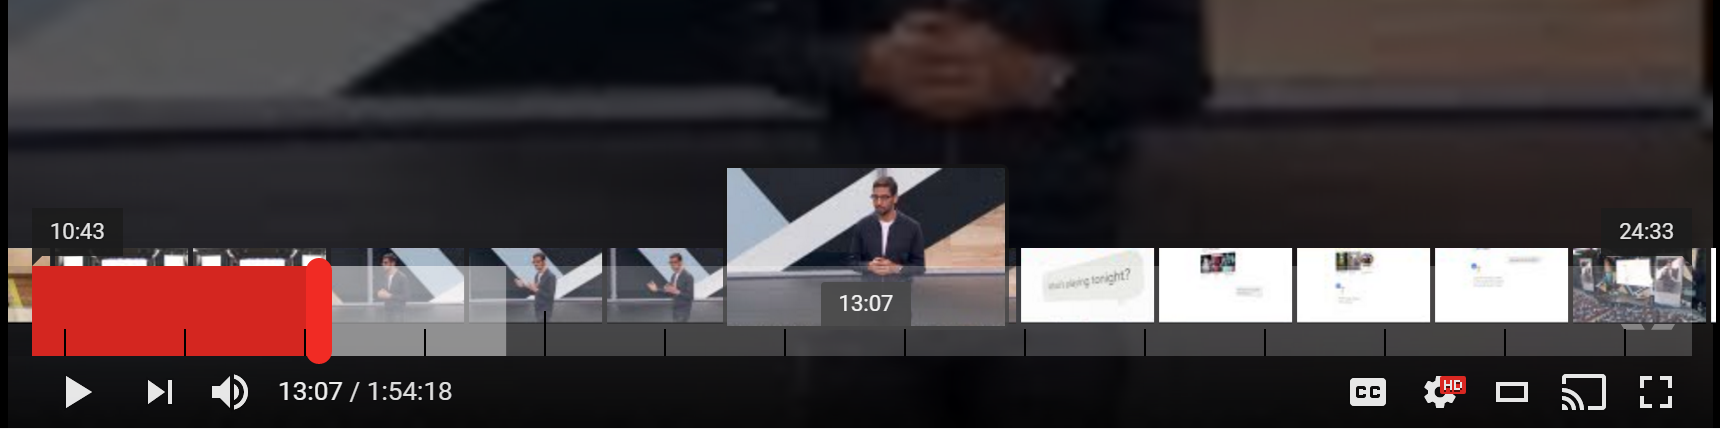 YouTube v11 38 prepares double-tap to seek and a setting to